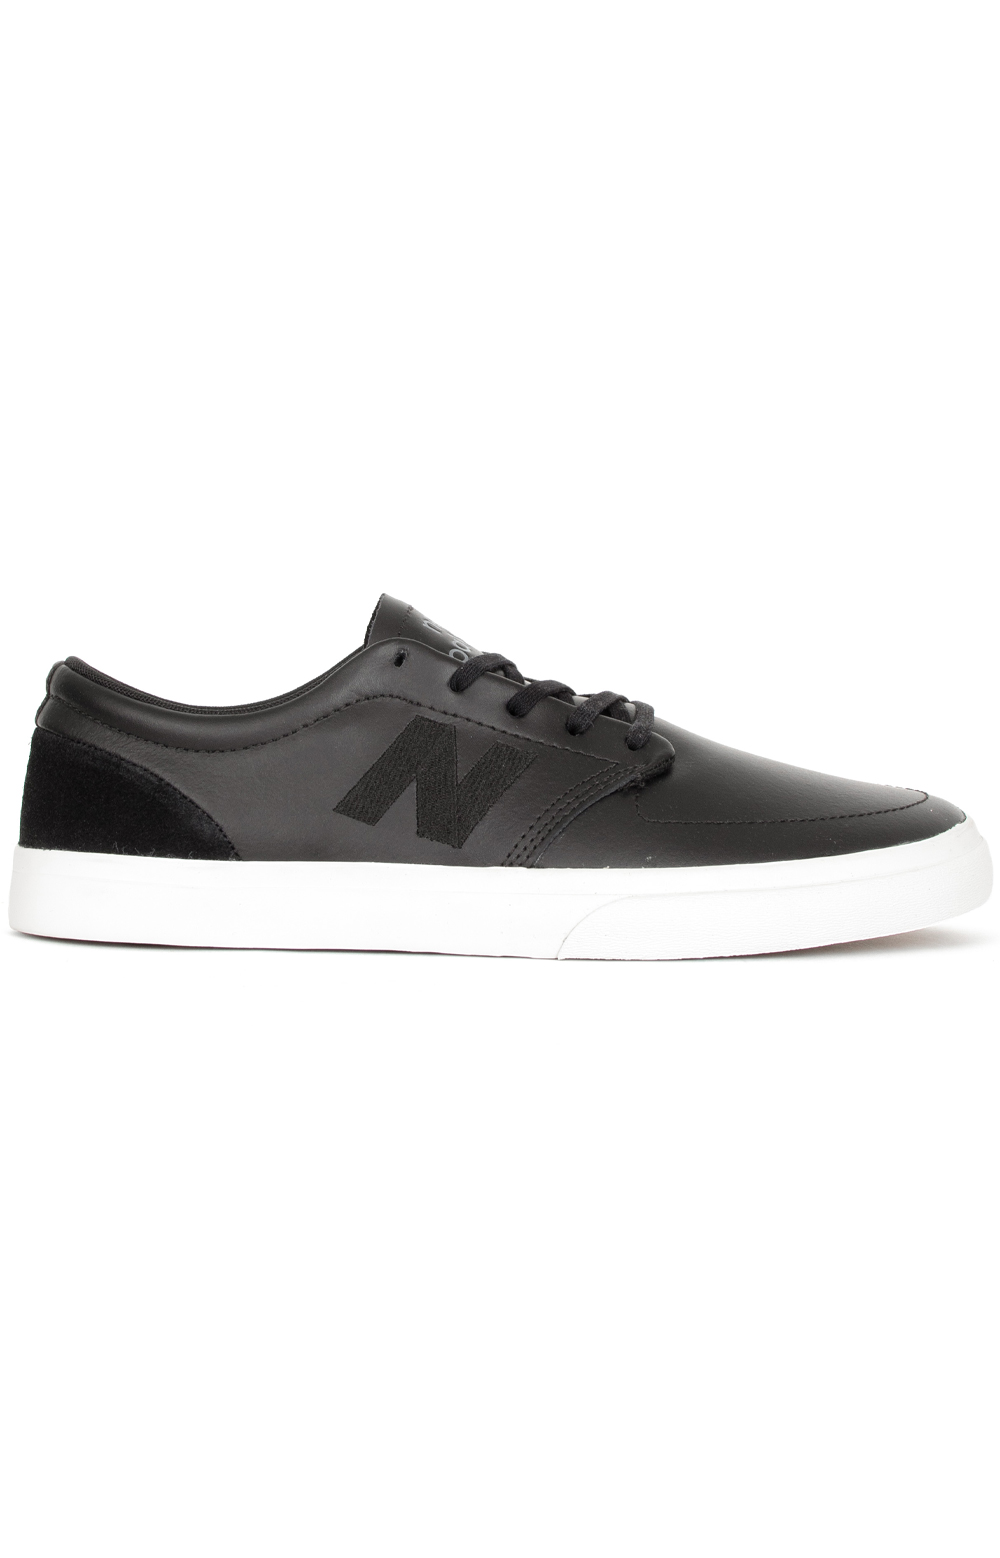 (NM345SSB) 345 Shoe - Black/White